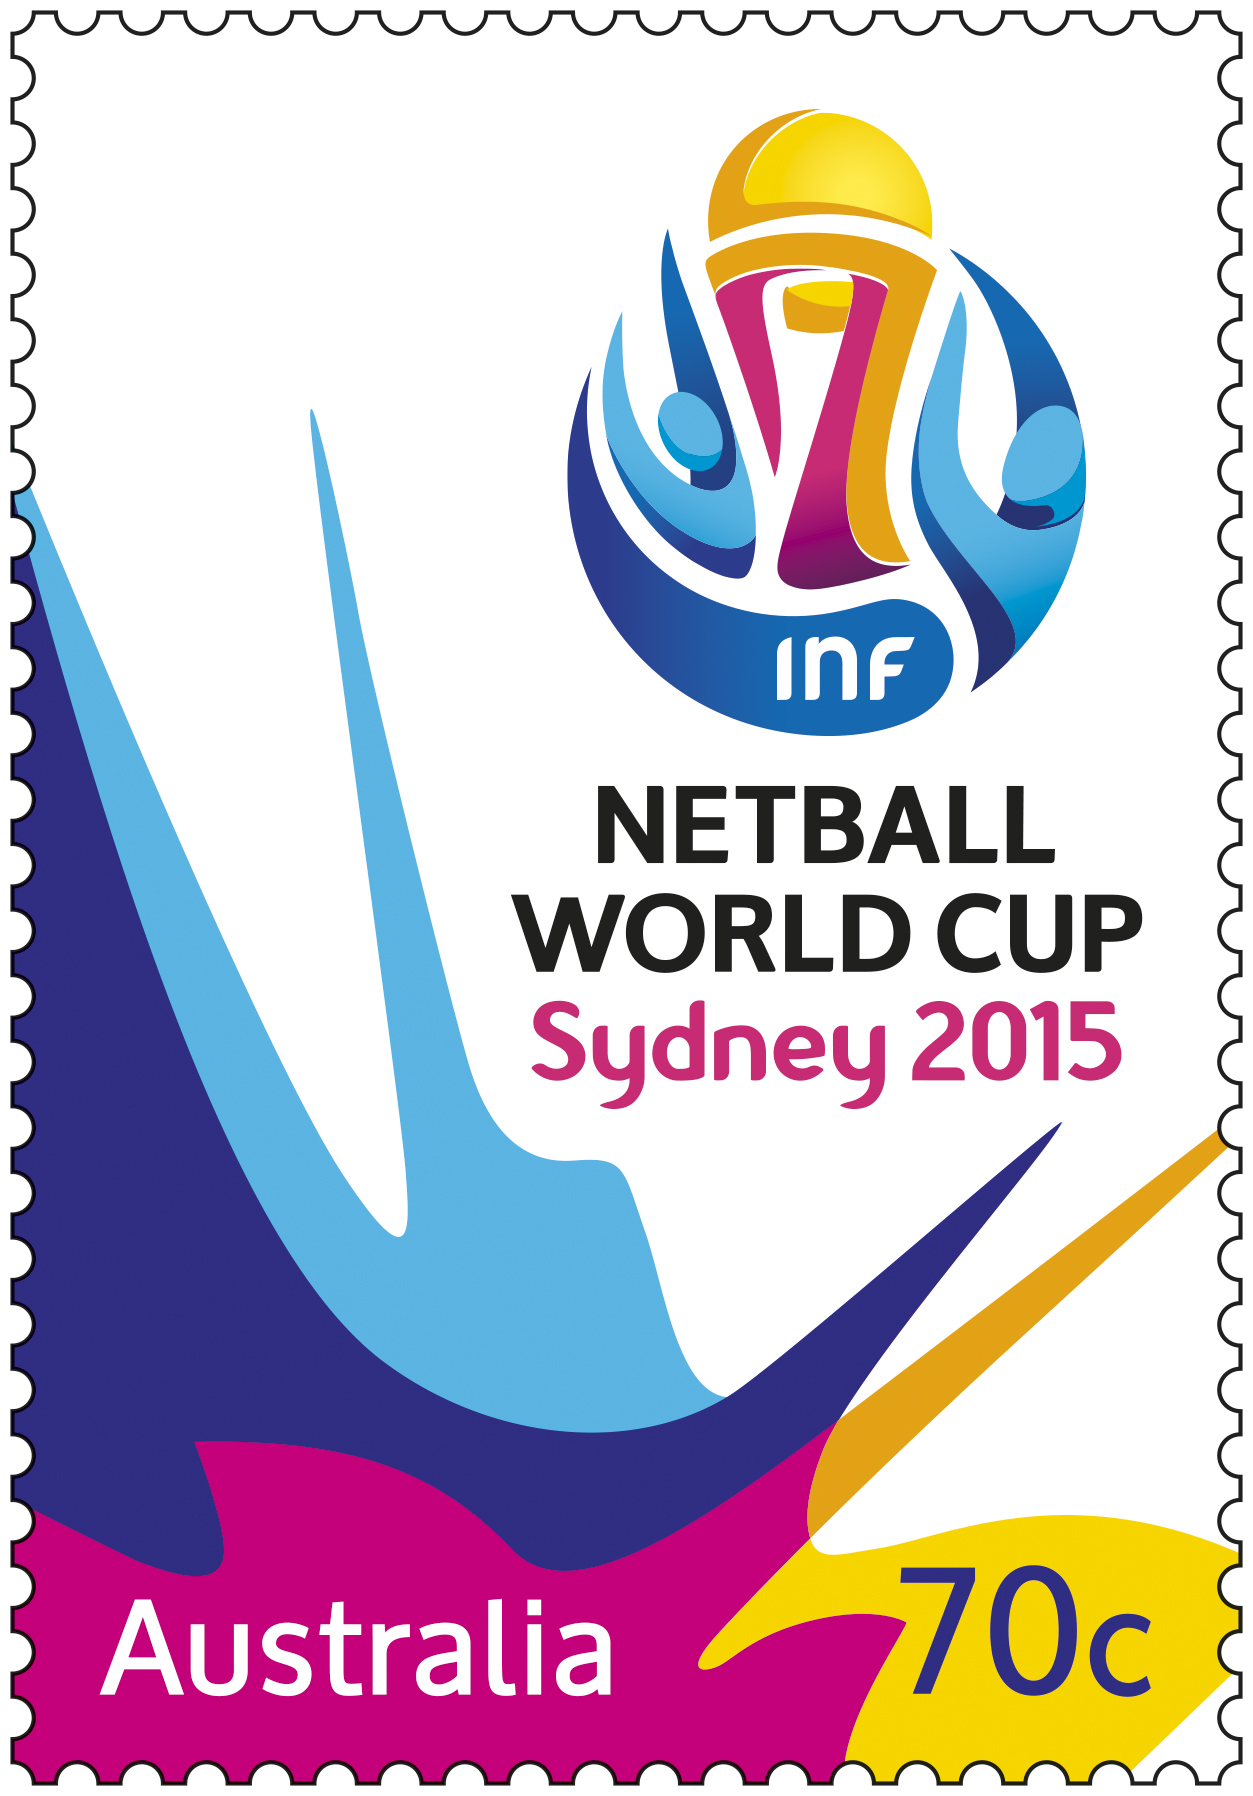 Australia Post highlights Netball World Cup SYDNEY 2015